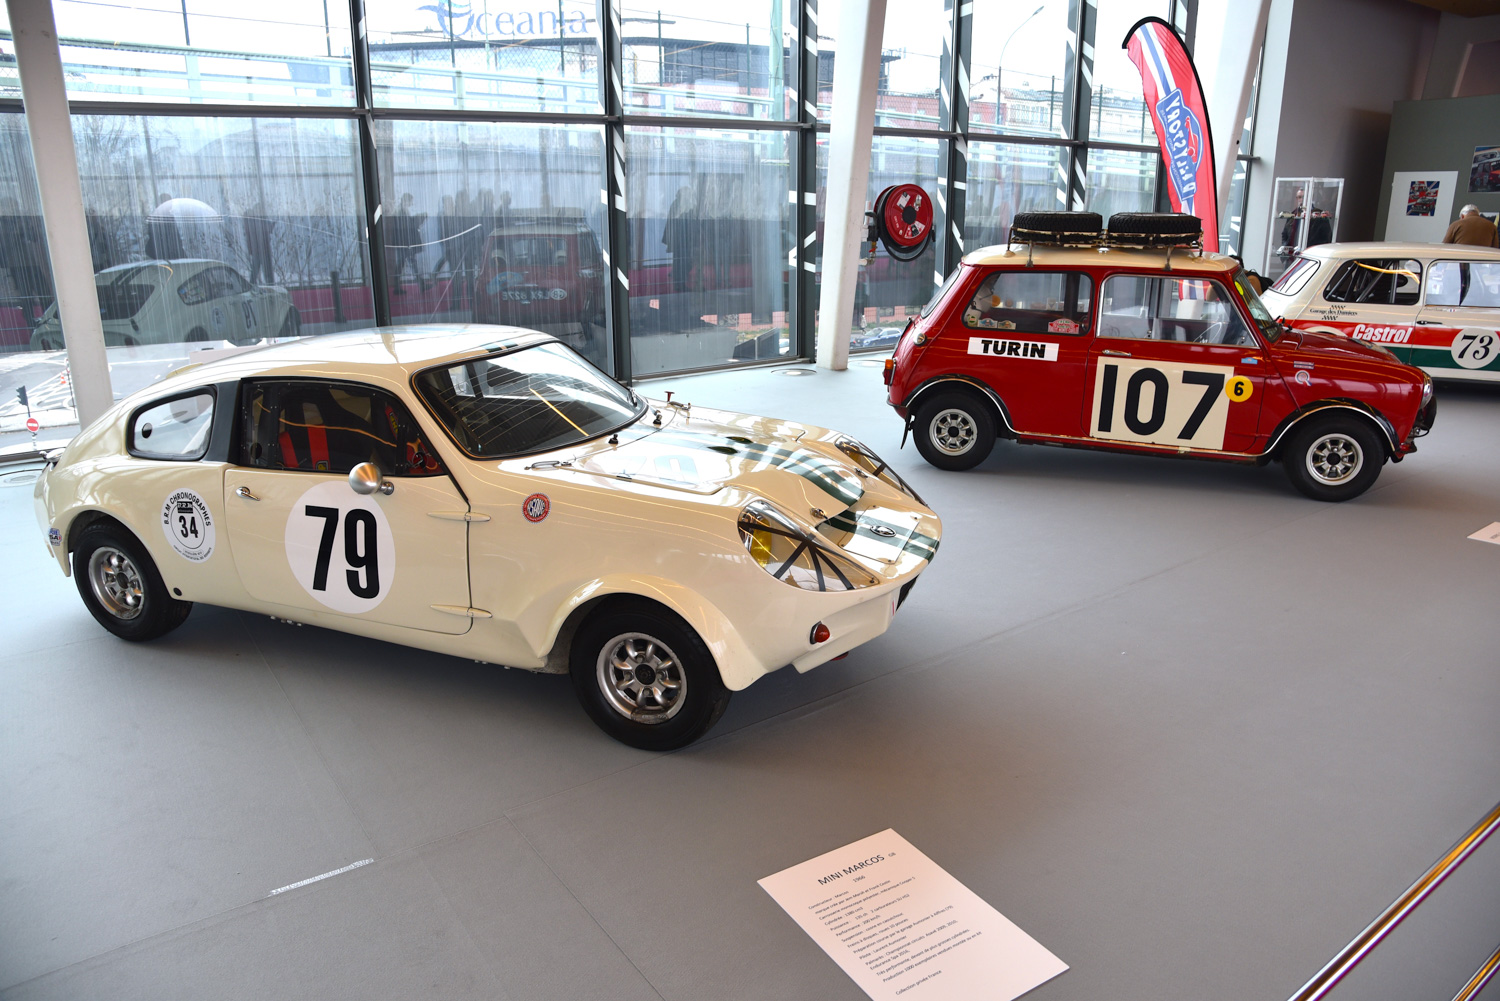 Also celebrated at Retromobile was the 60th anniversary of Mini which included a restored cutaway auto show display of Sir Alec Issigonis's original design, and a Mini Marcos, a sports version of the Mini sold in kit form and the only British car to finish the 1966 24 Hours of Le Mans (in 15th place), assuming you're not counting the Ford GT40 as a British car.